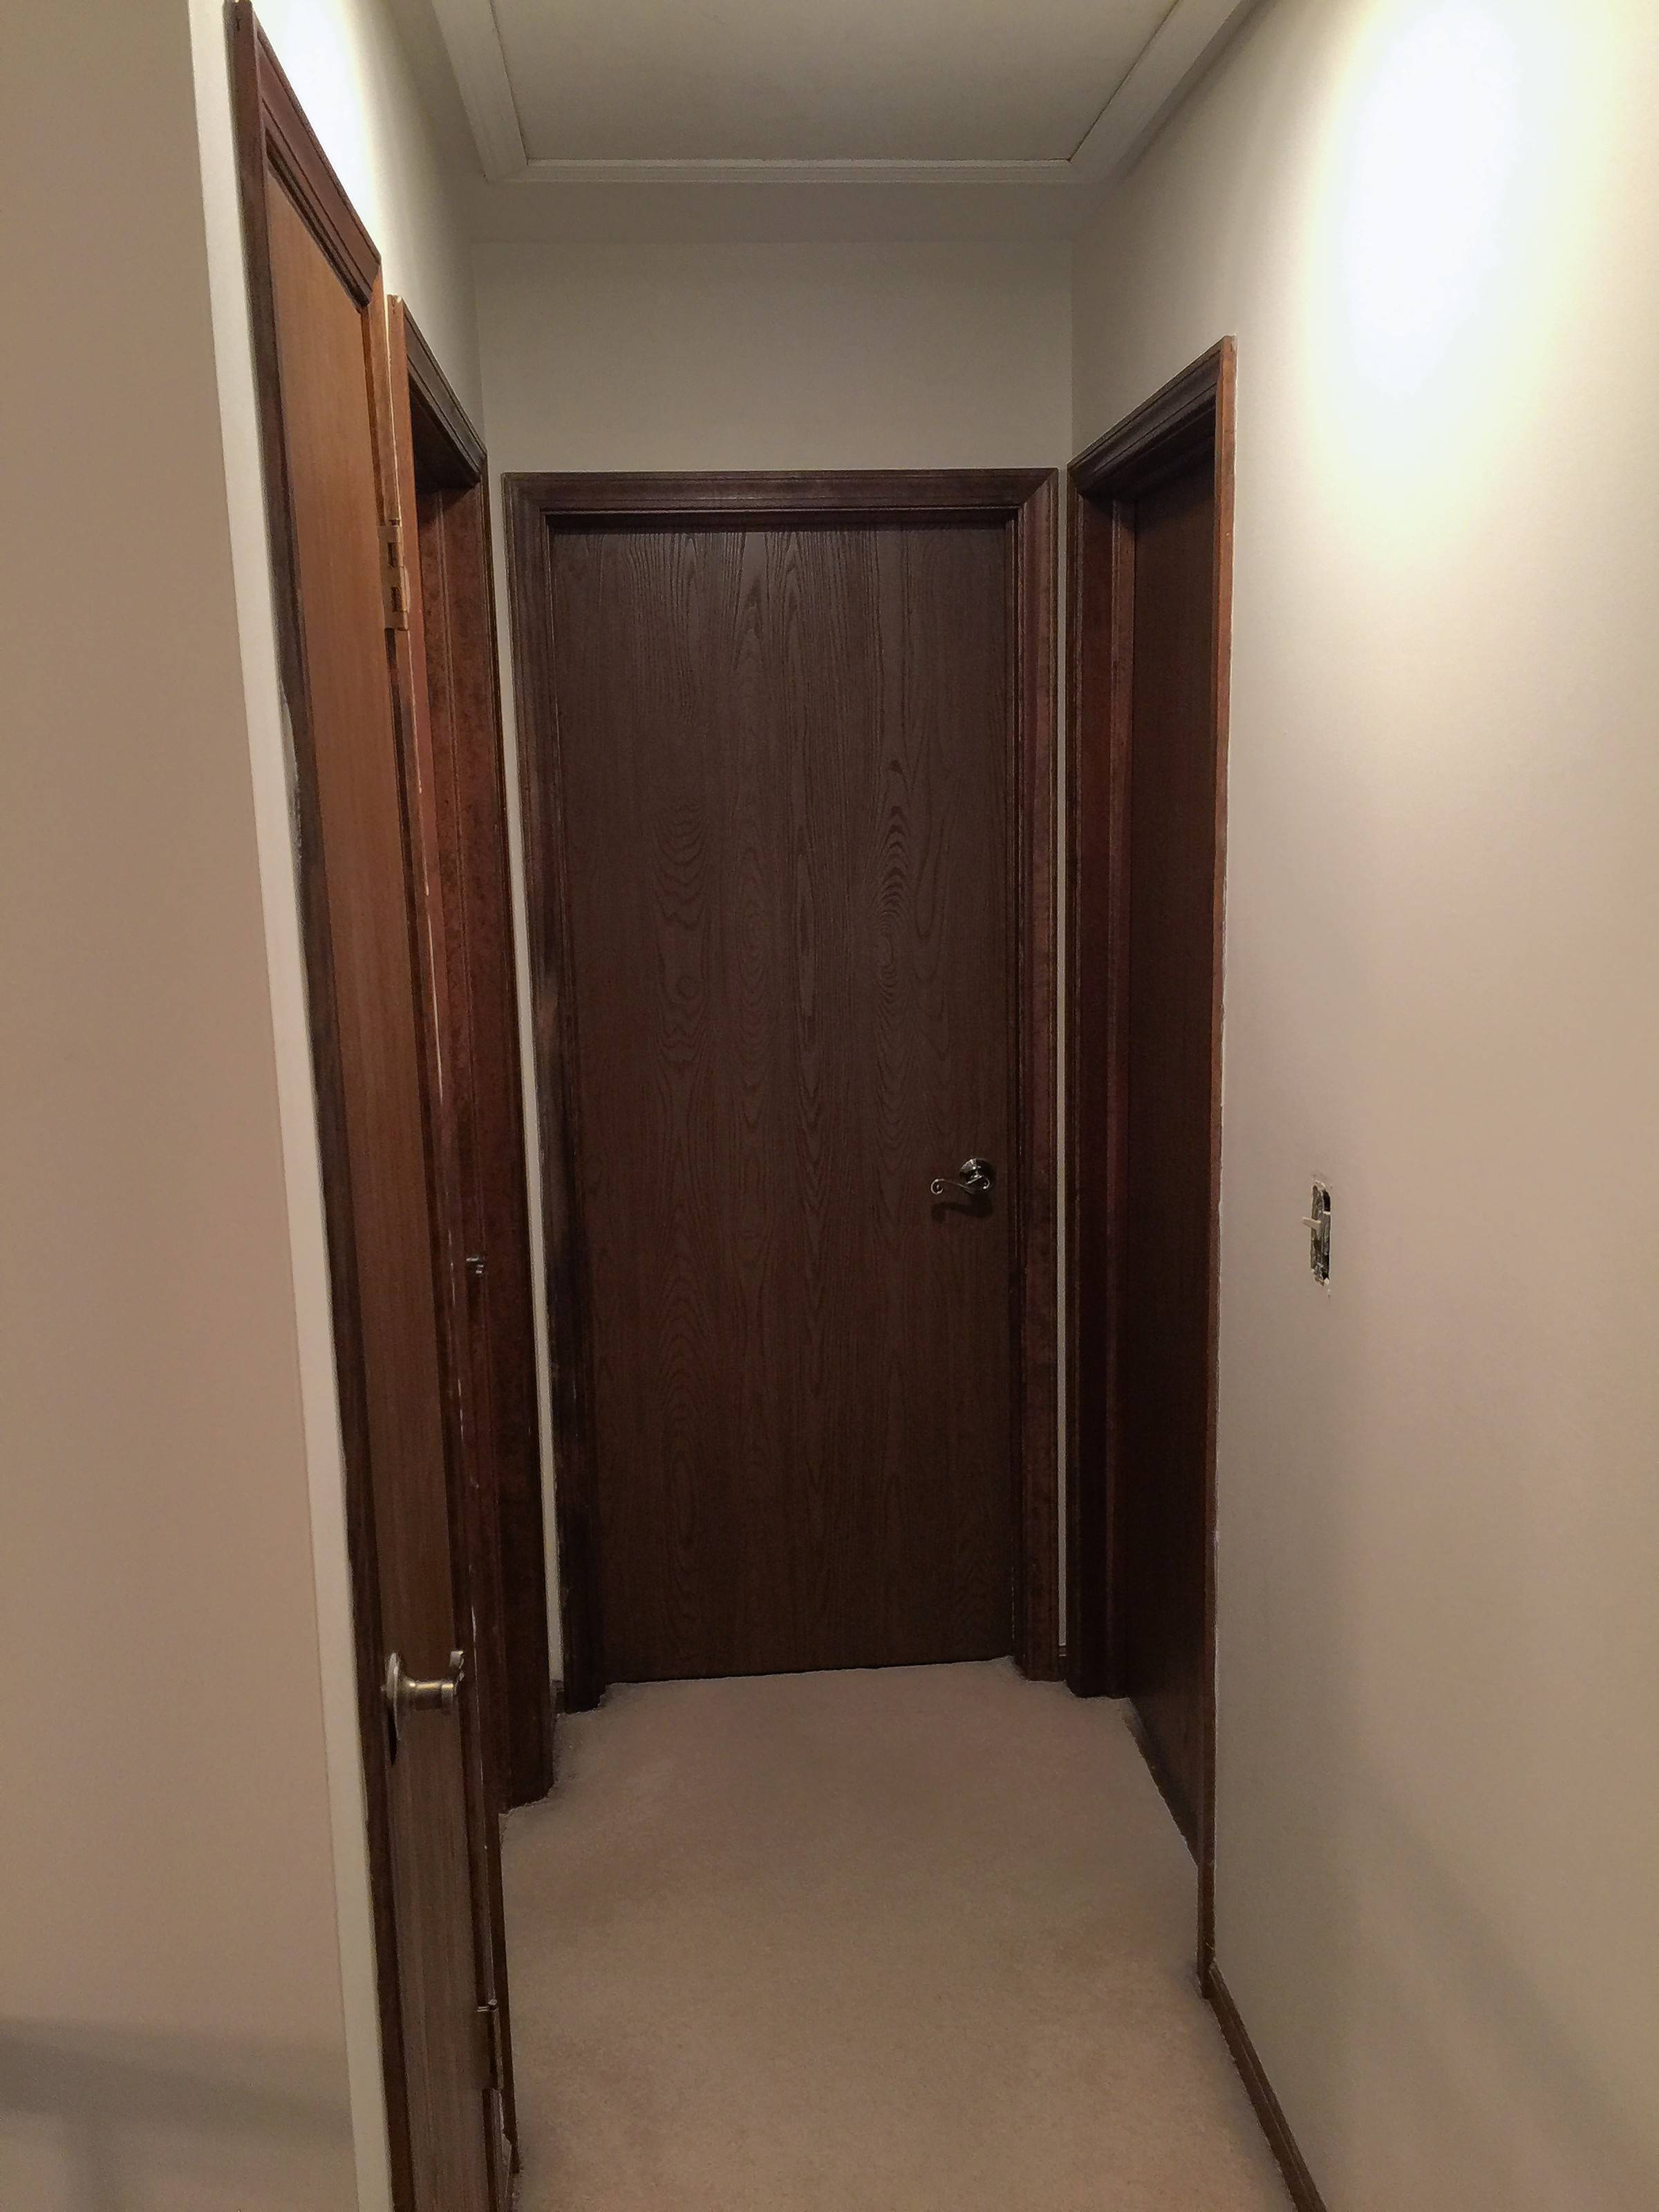 Jenna Kilday of Geneva says wrote that her upstairs hallway was too dark and looked outdated with its flat doors.